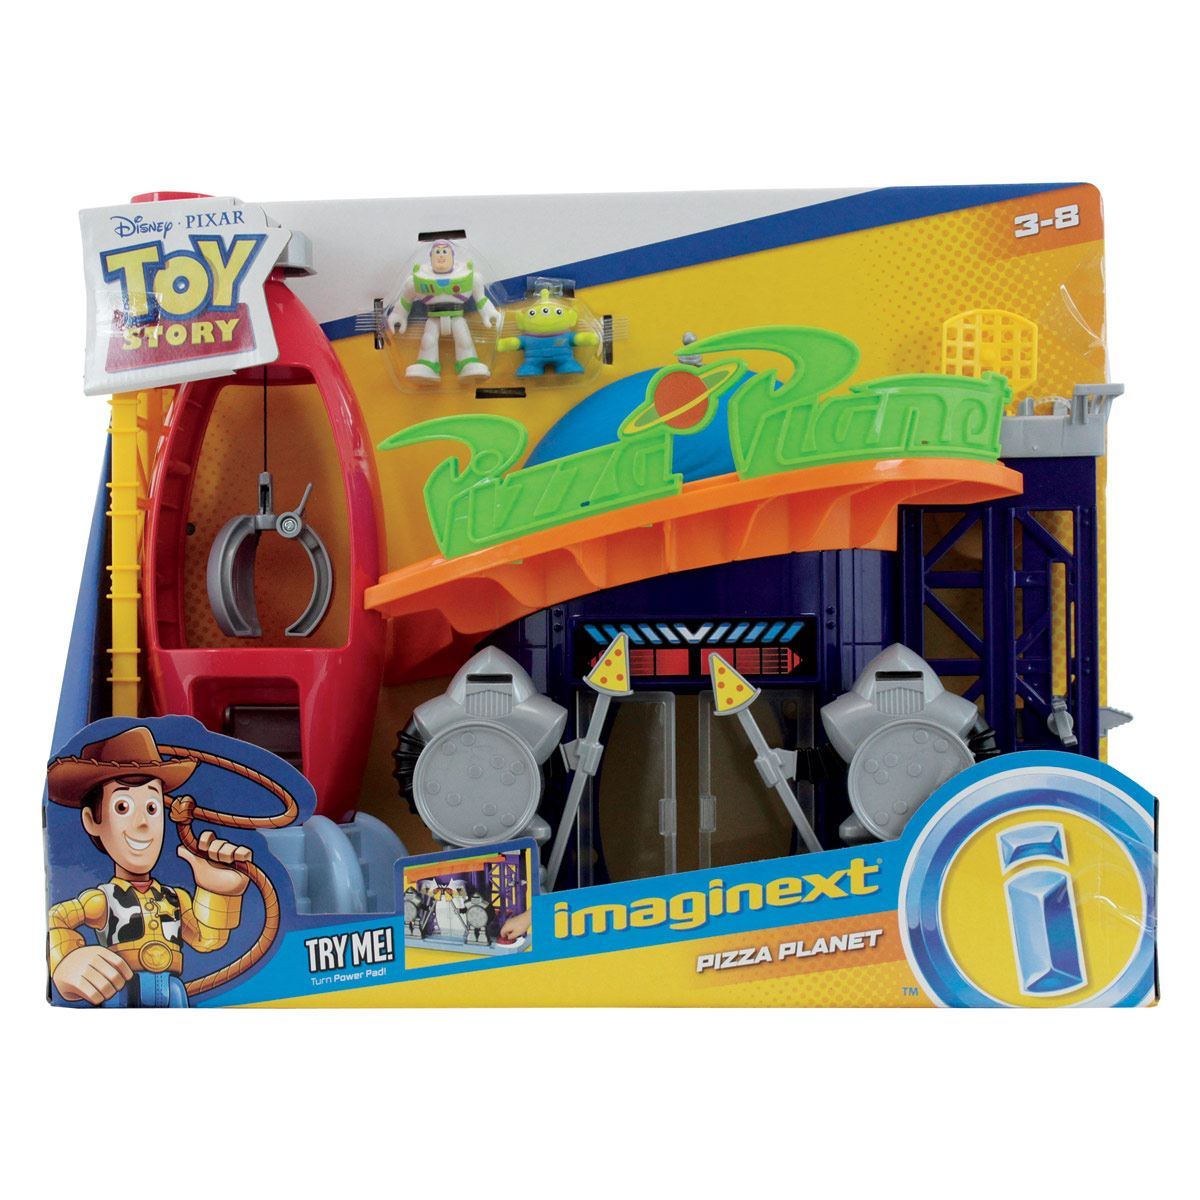 F-P Imaginext toy story pizza planet Fisher Price